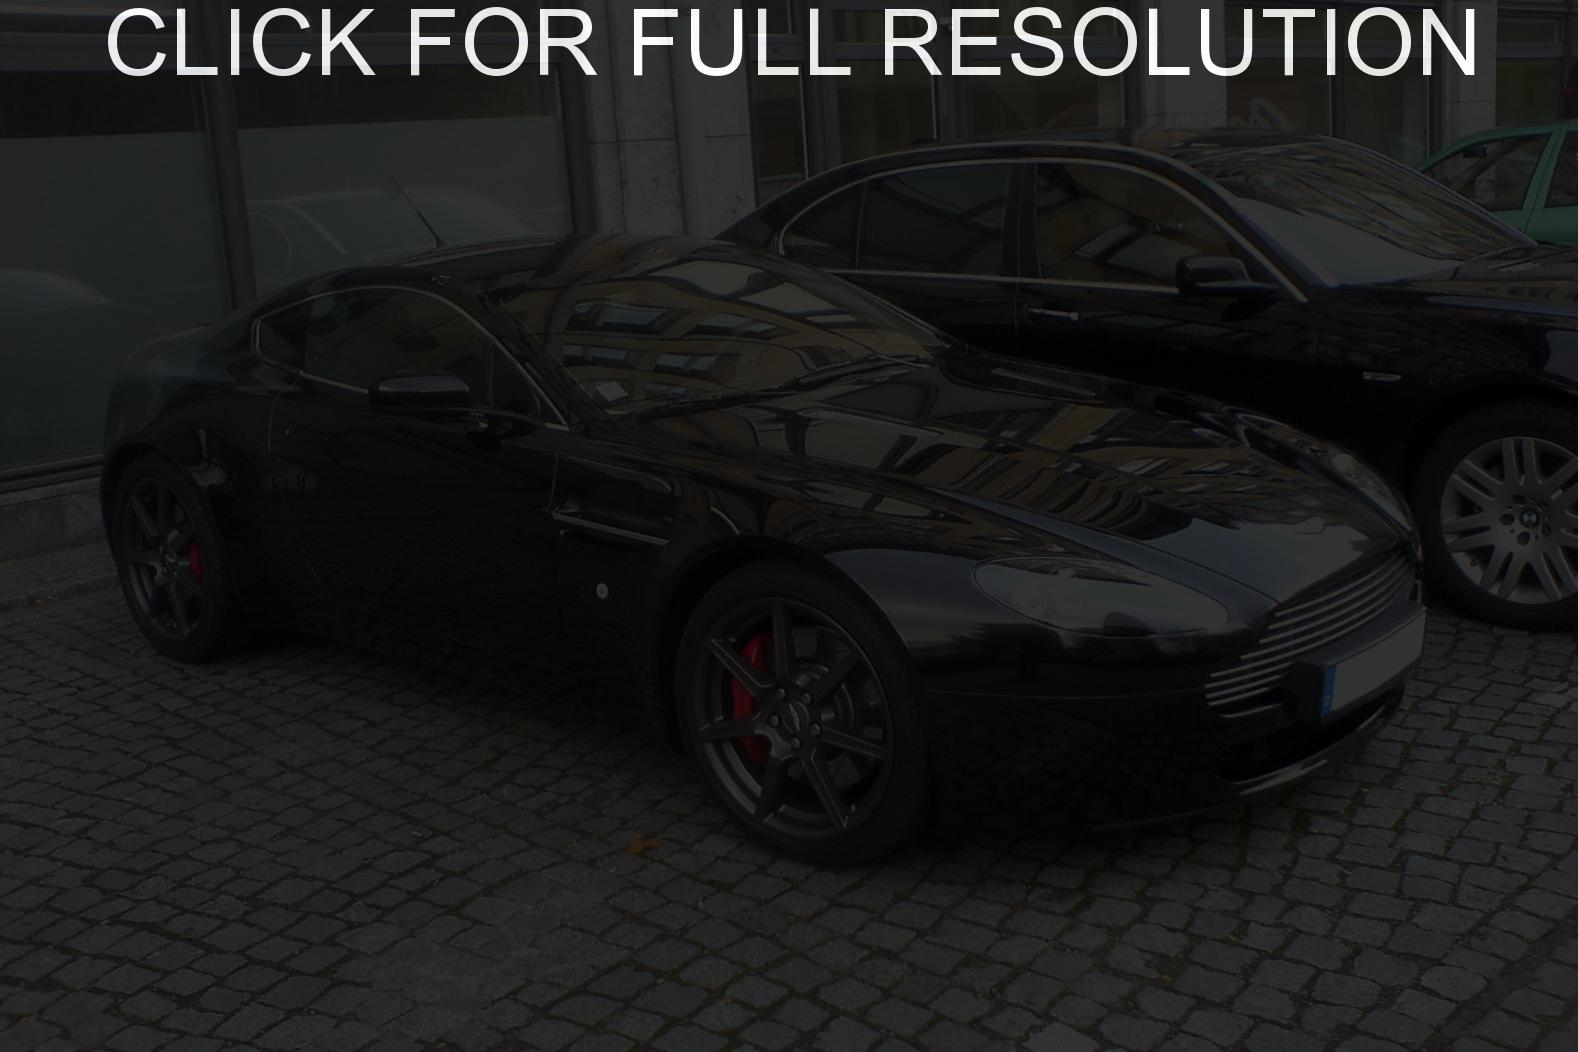 vantage - Automobile Wallpapers in, HD | Iphone | Android| Desktop 10